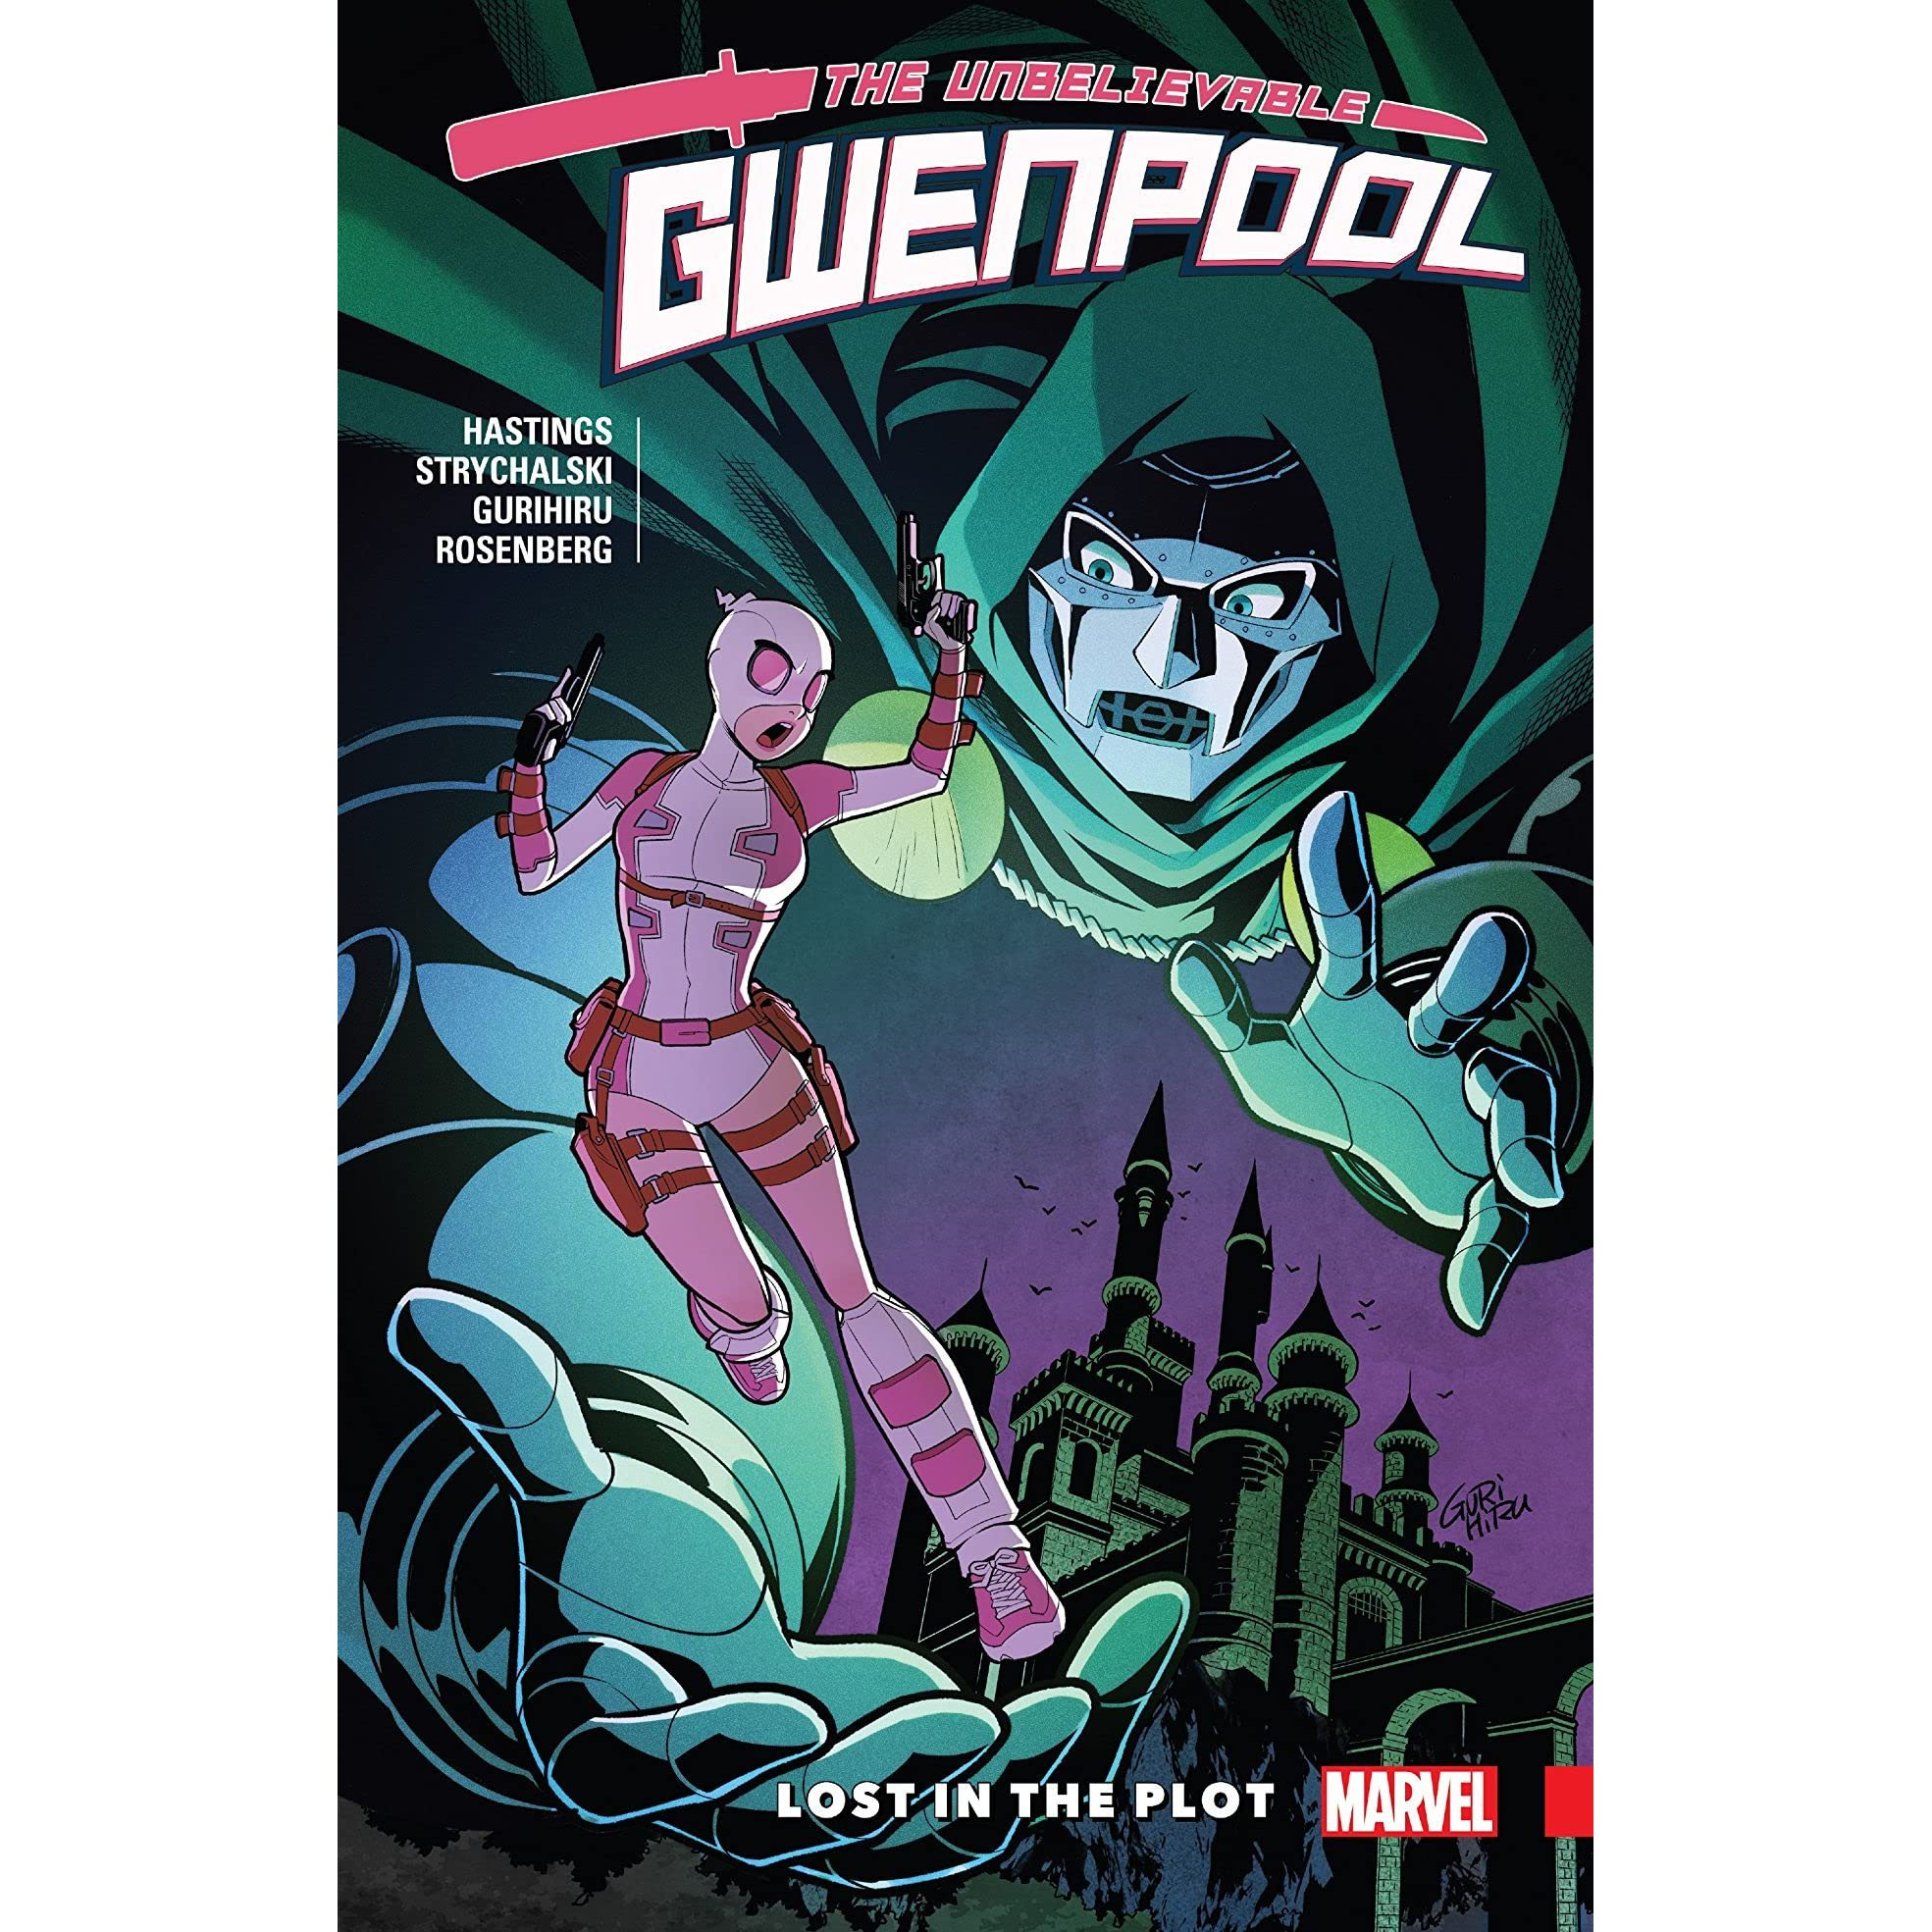 Gwenpool the unbelievable vol 5 lost in the plot by christopher gwenpool the unbelievable vol 5 lost in the plot by christopher hastings fandeluxe Image collections